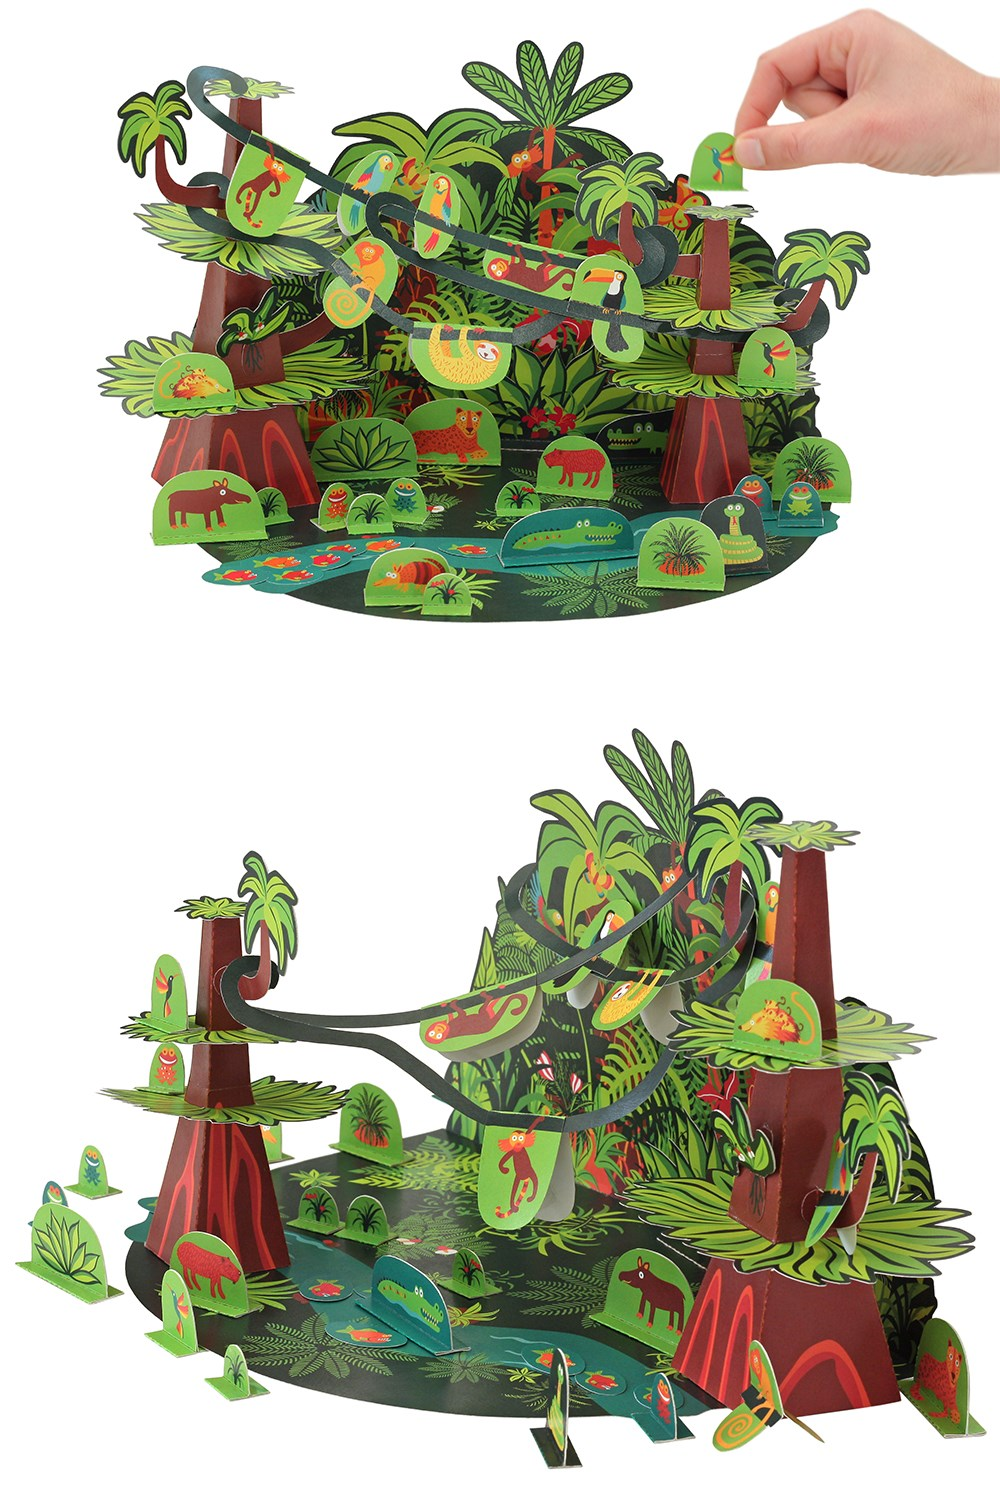 PUKACA Tropical Forest Paper Toy - DIY Paper Craft Kit